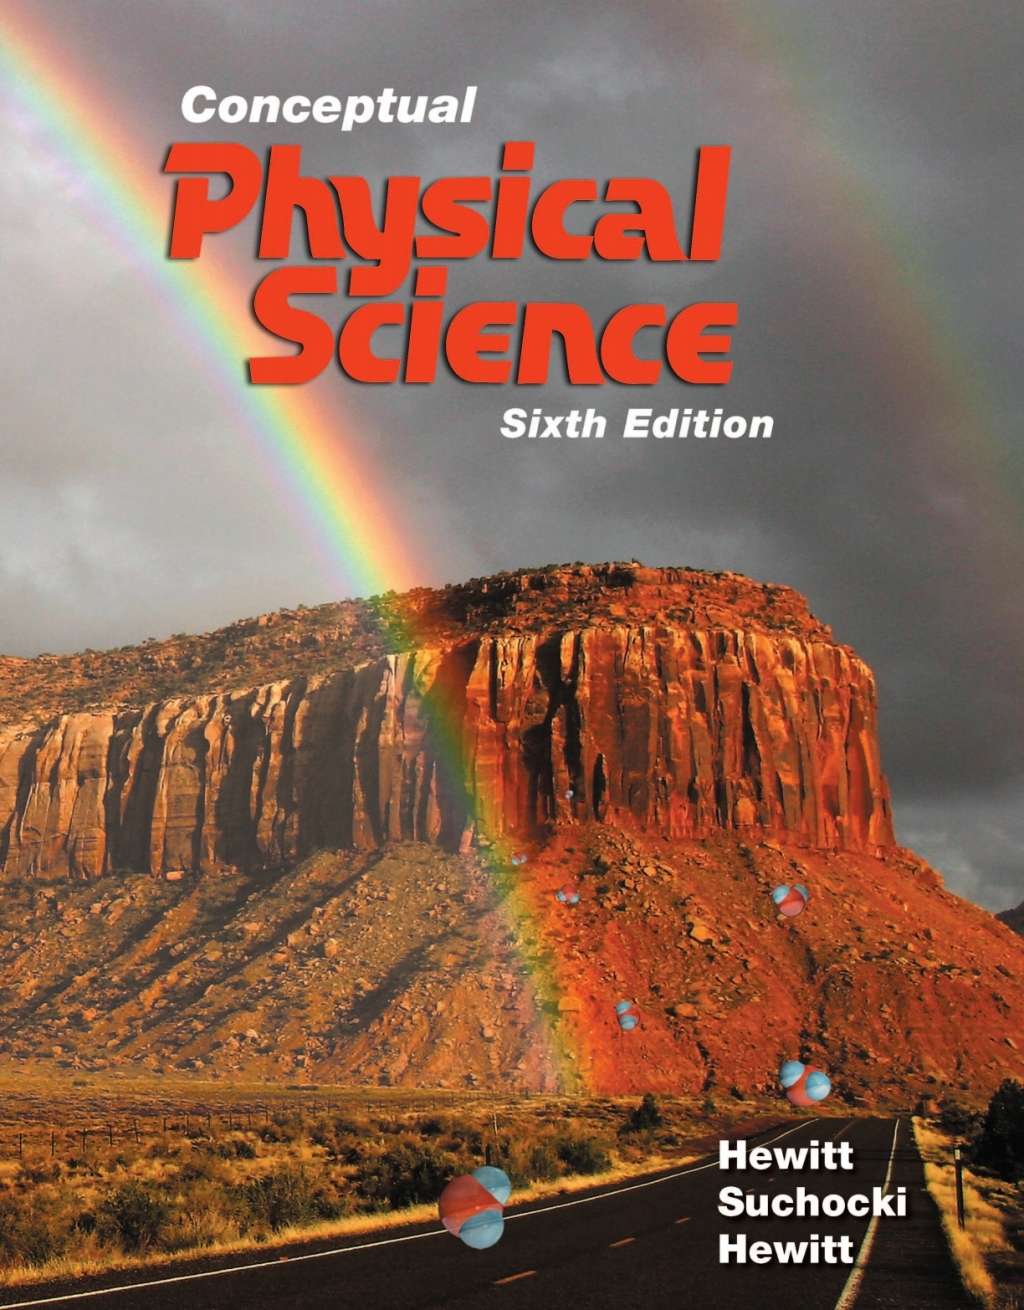 Conceptual Physical Science (ebook)